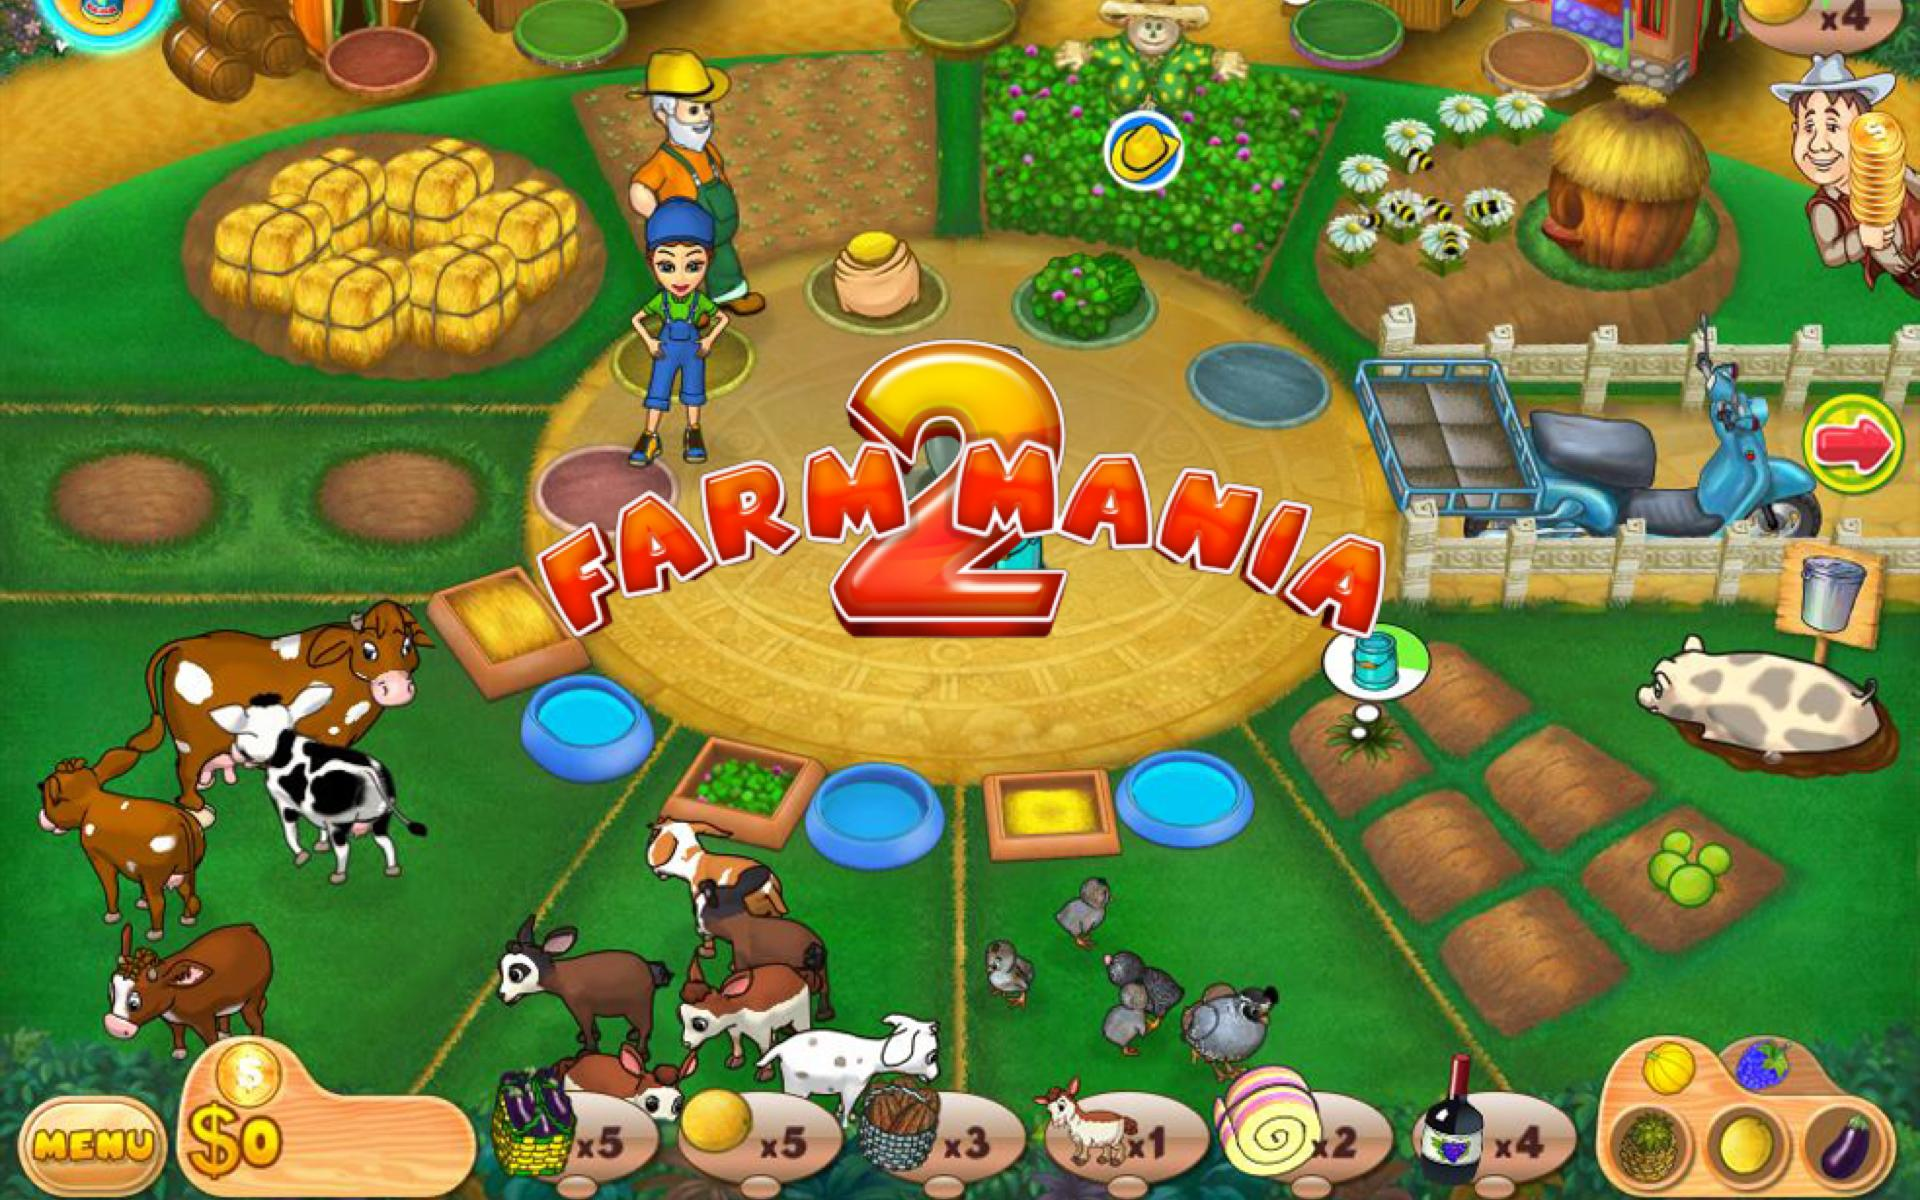 nanny mania 2 free download full version crack